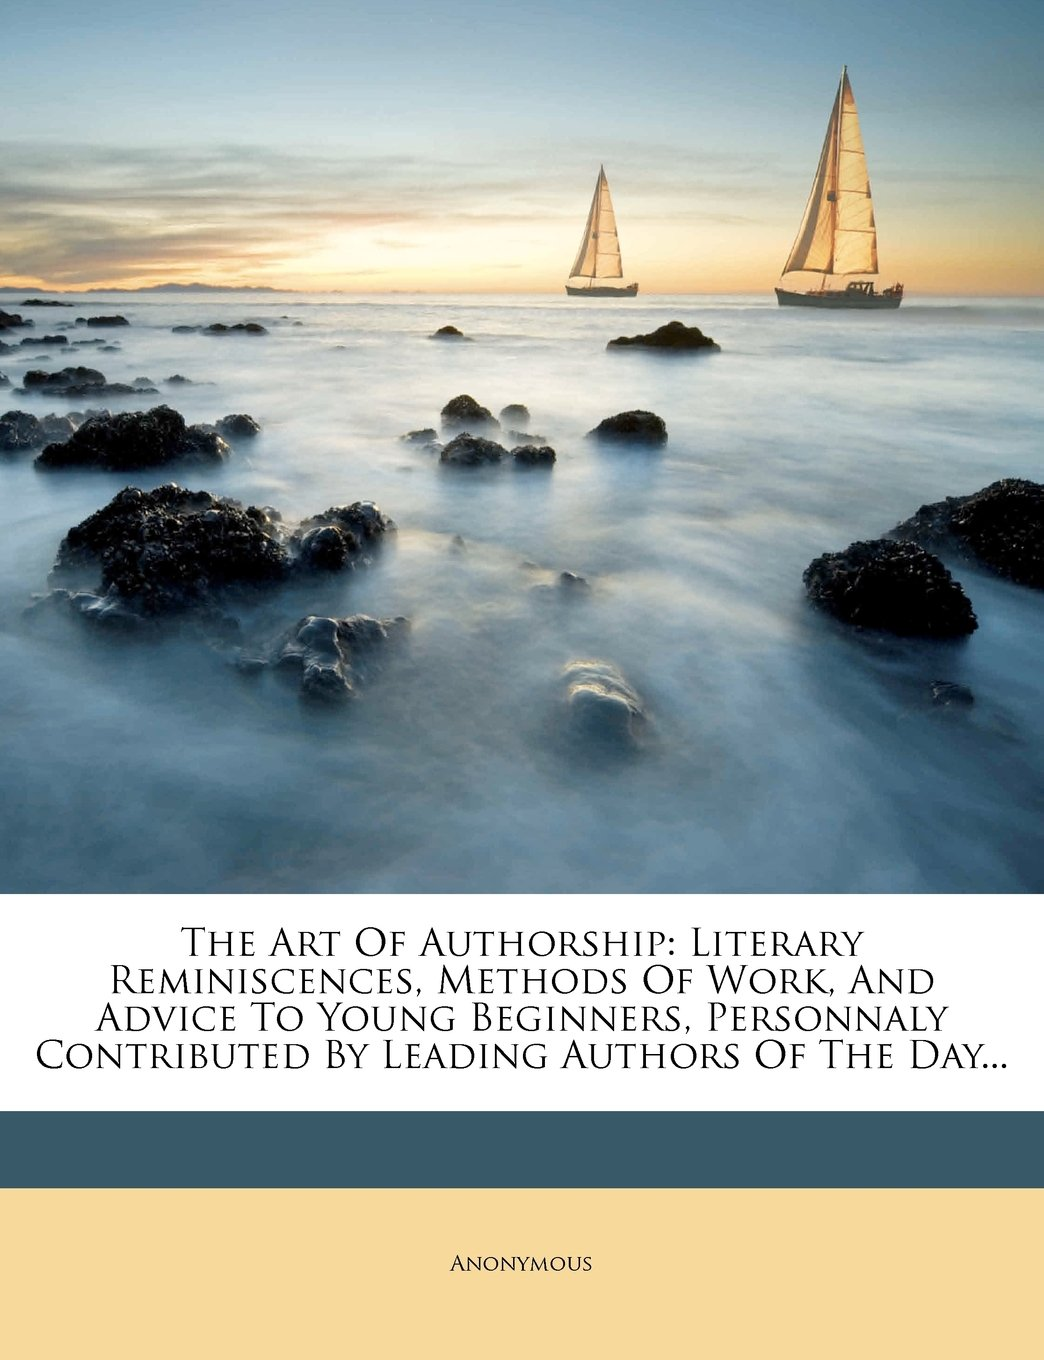 Download The Art Of Authorship: Literary Reminiscences, Methods Of Work, And Advice To Young Beginners, Personnaly Contributed By Leading Authors Of The Day... pdf